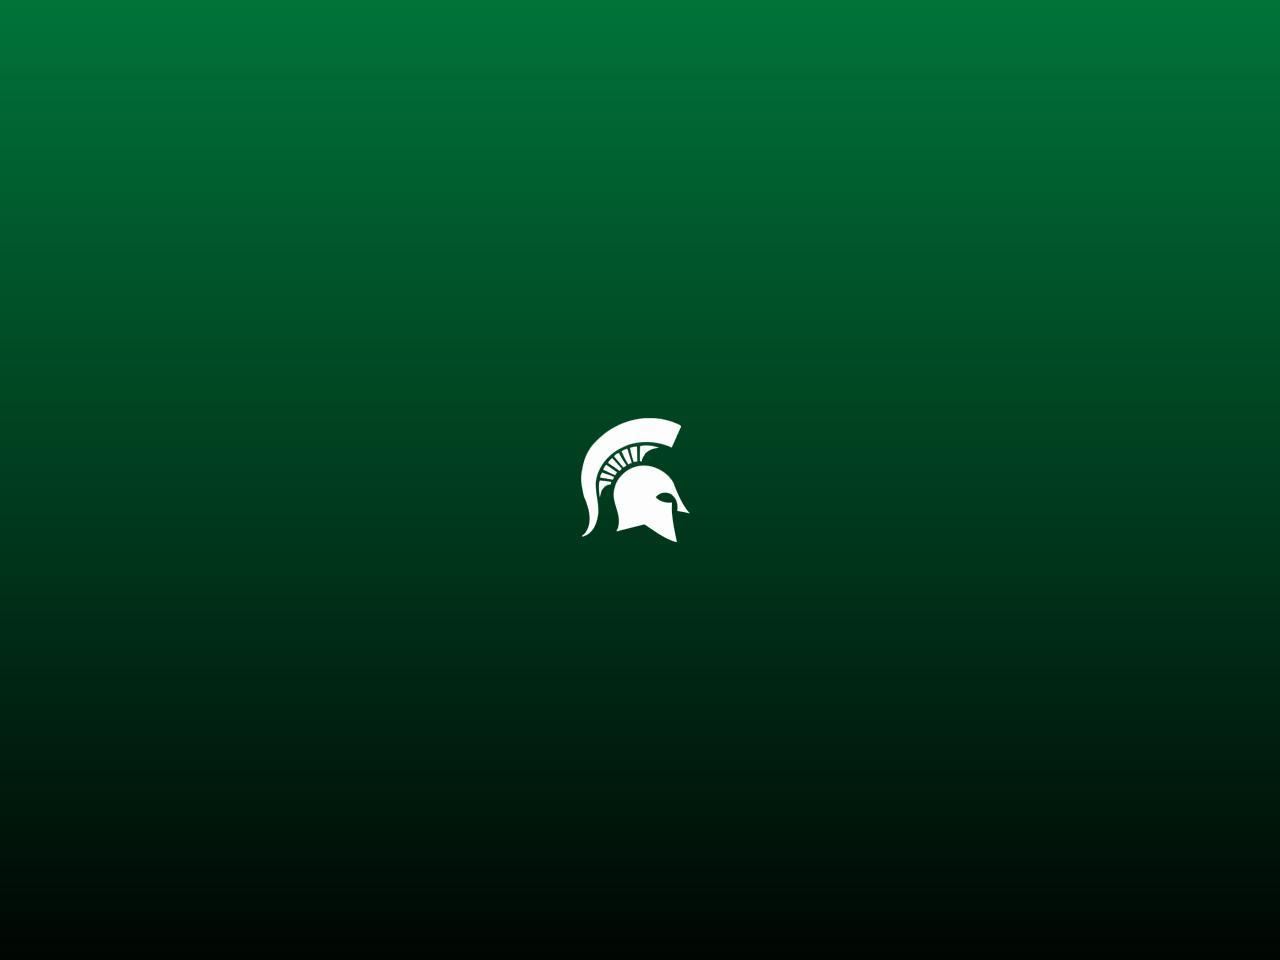 michigan state spartans wallpapers wallpaper cave